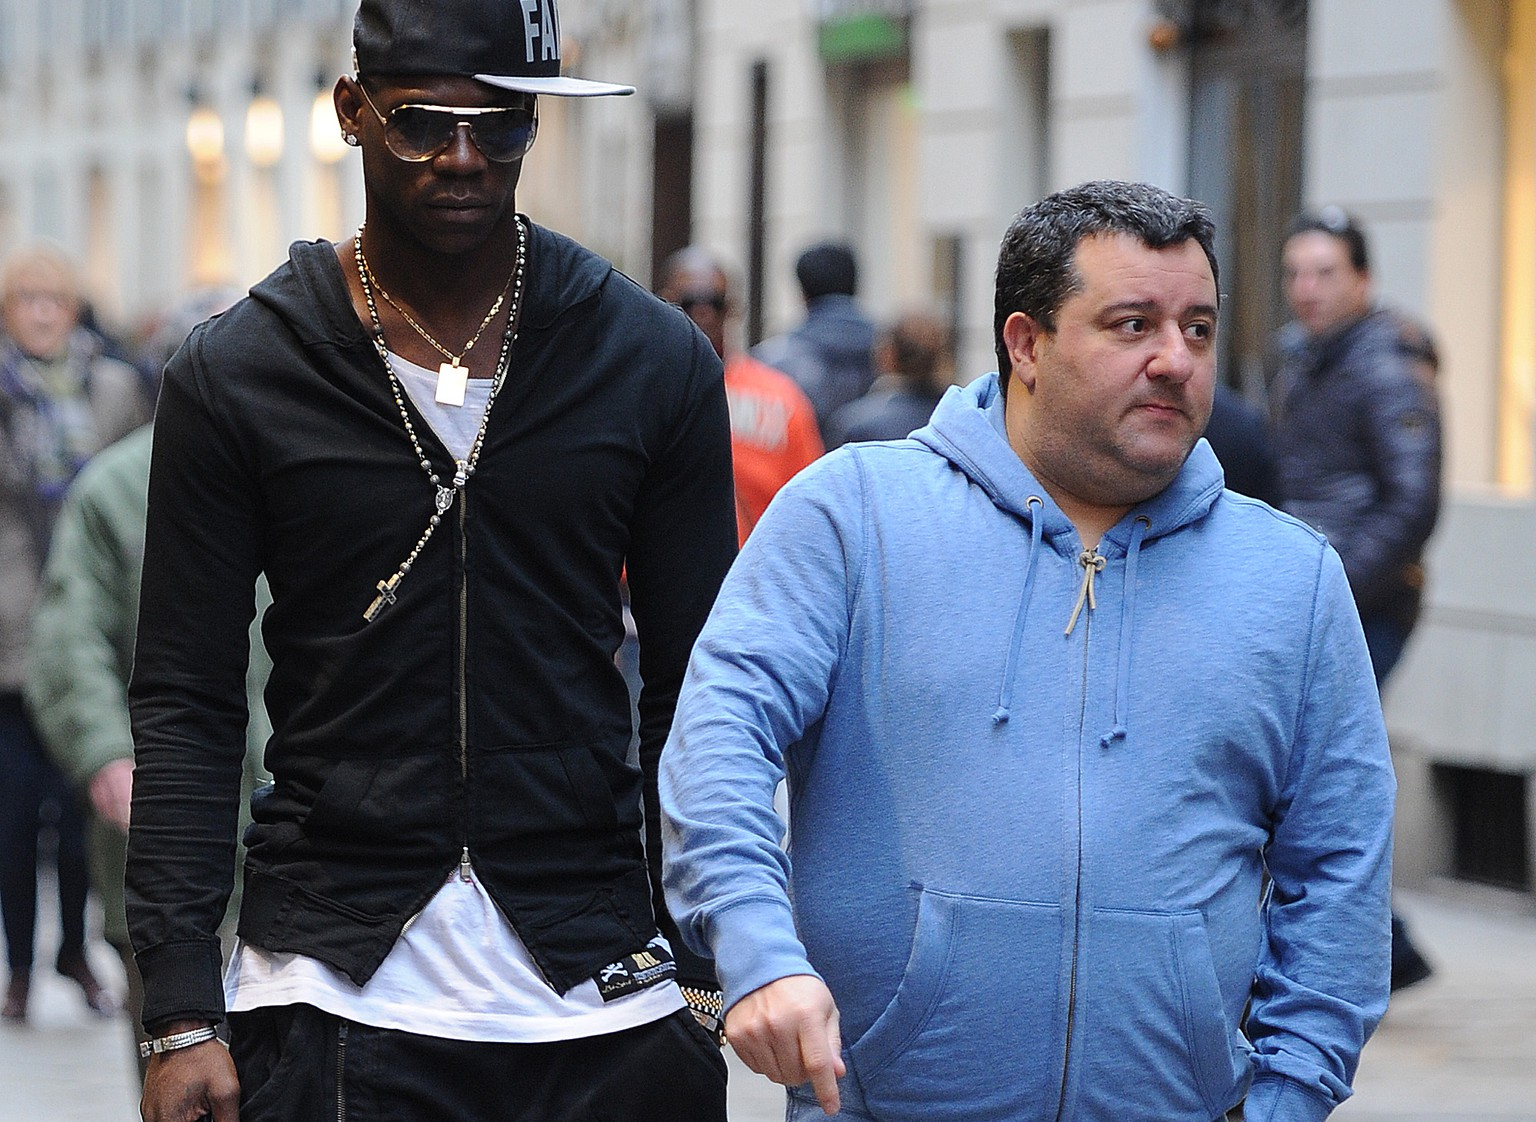 MILAN, ITALY - MARCH 05:  Agent Mino Raiola and Mario balotelli are seen on March 5, 2013 in Milan, Italy.  (Photo by Jacopo Raule/Getty Images)